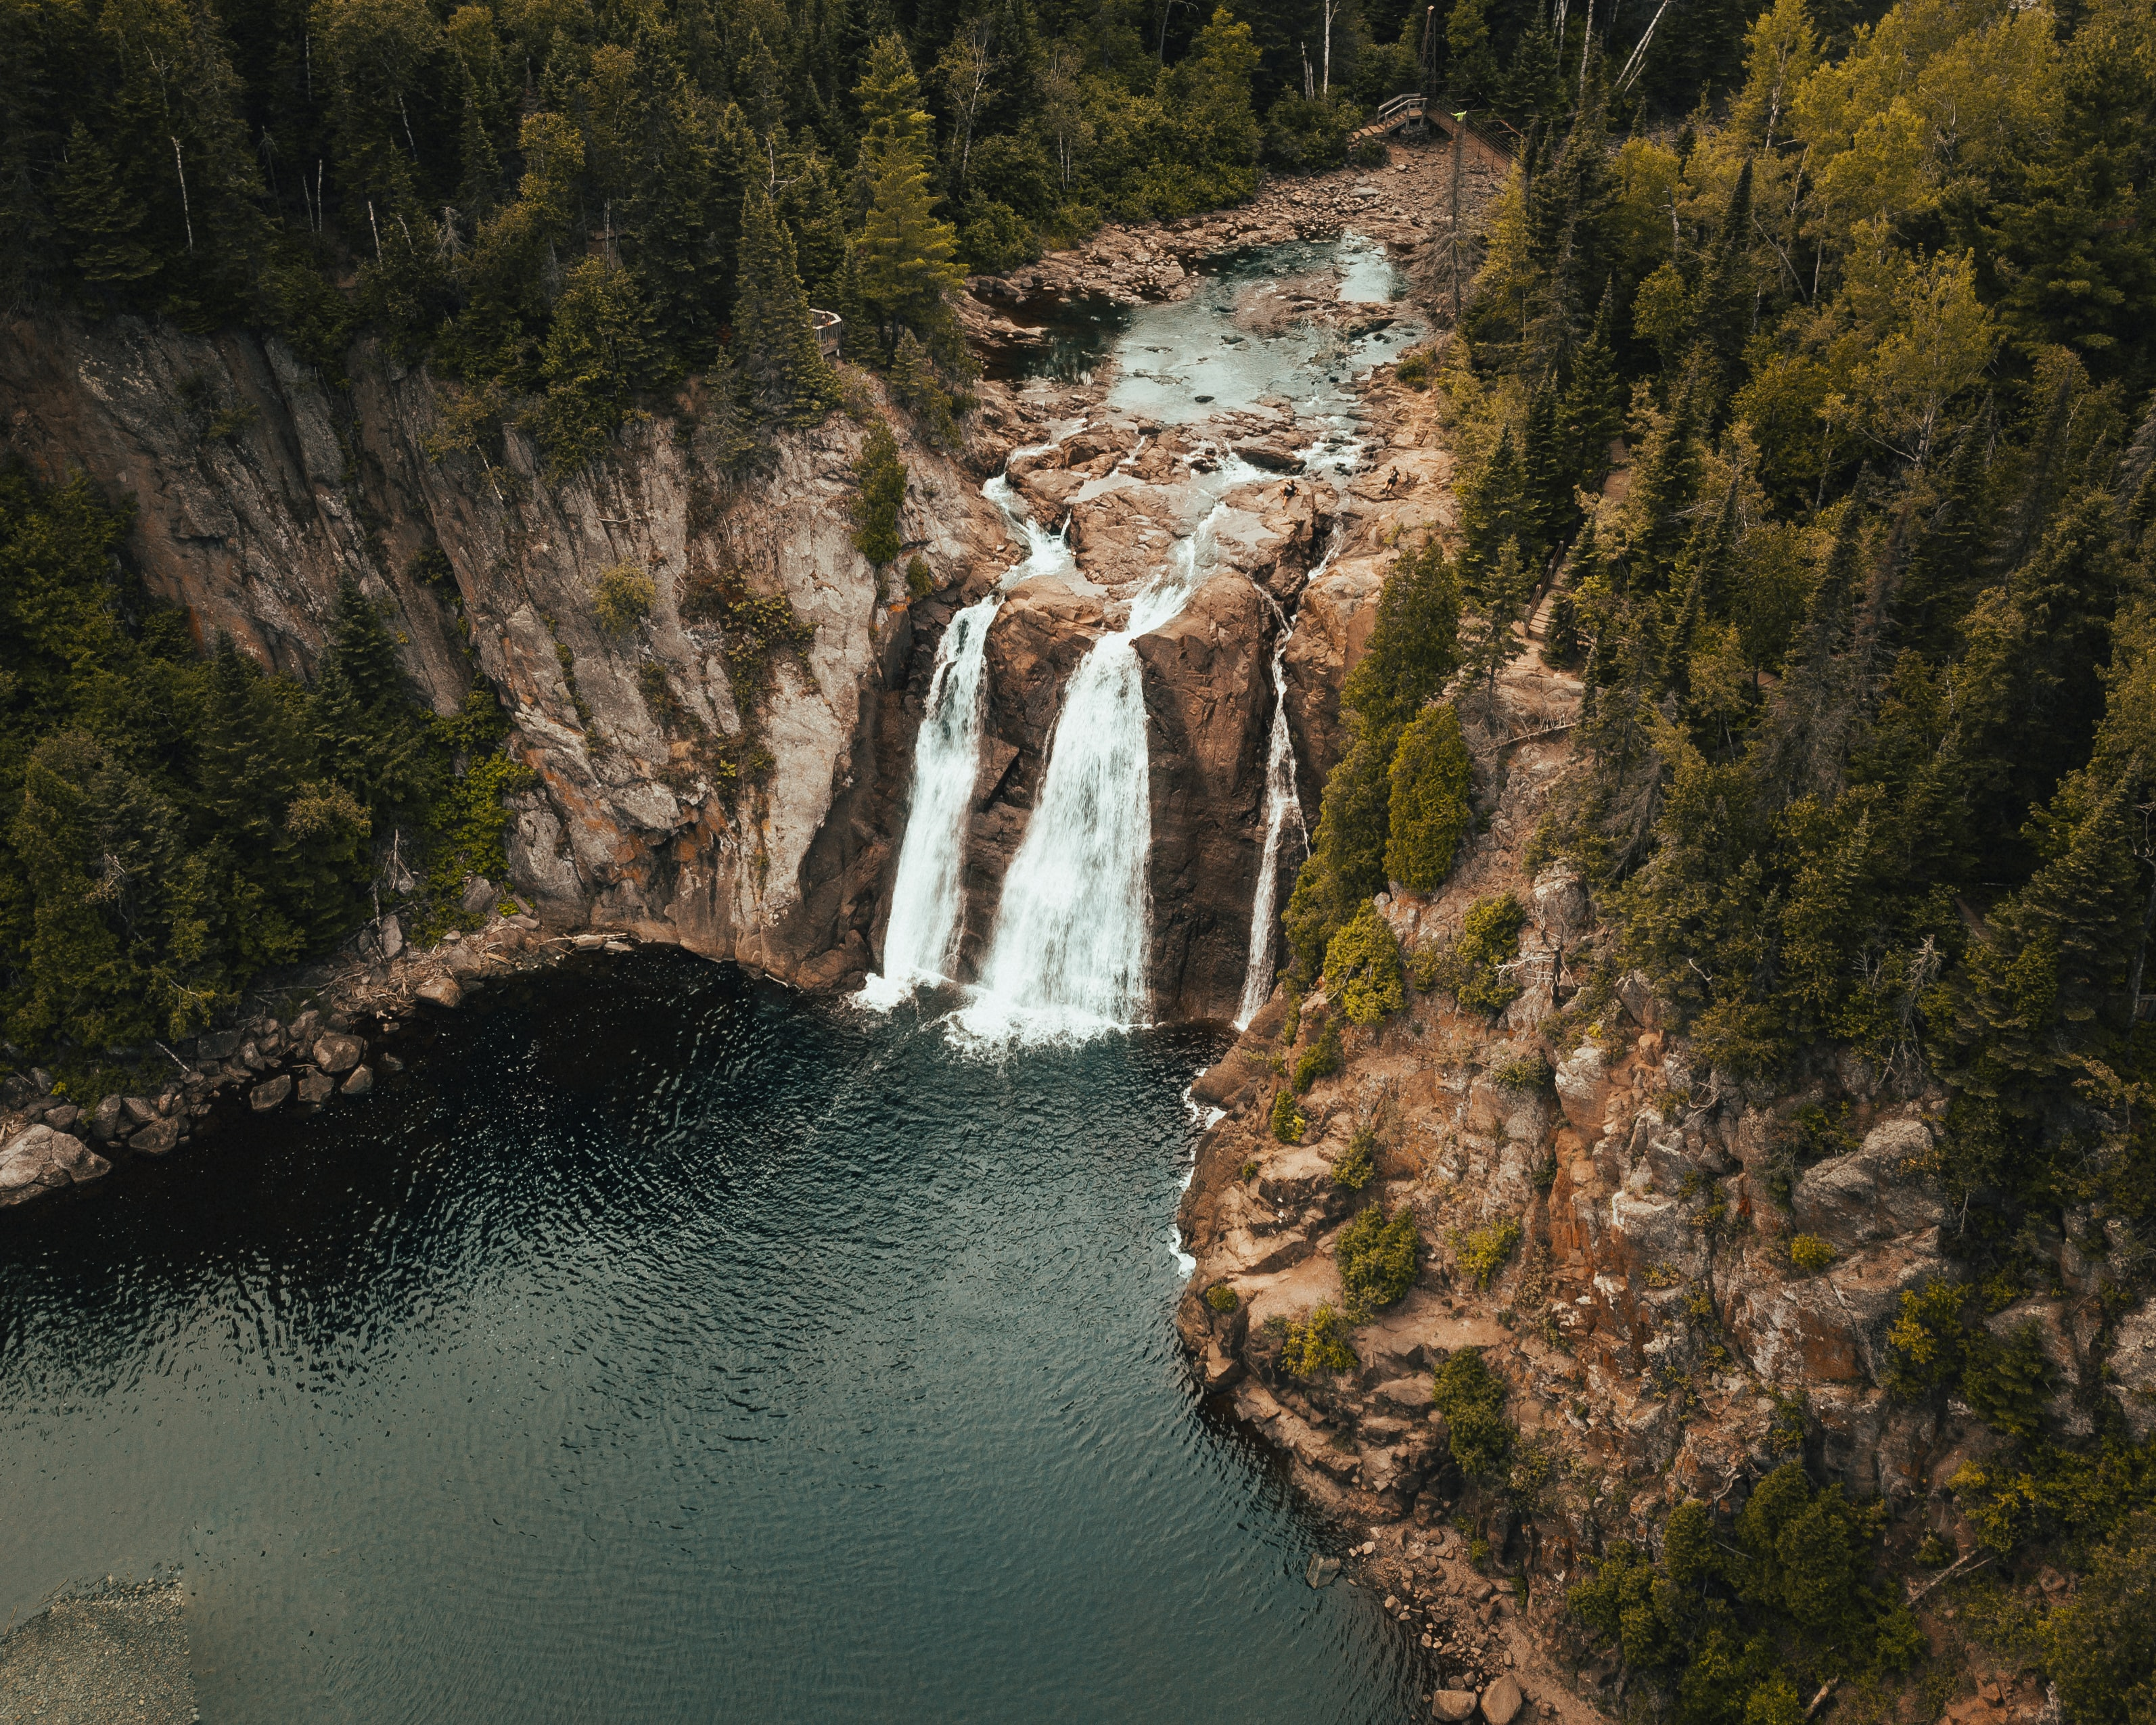 aerial view photography of waterfalls surrounded by pine trees